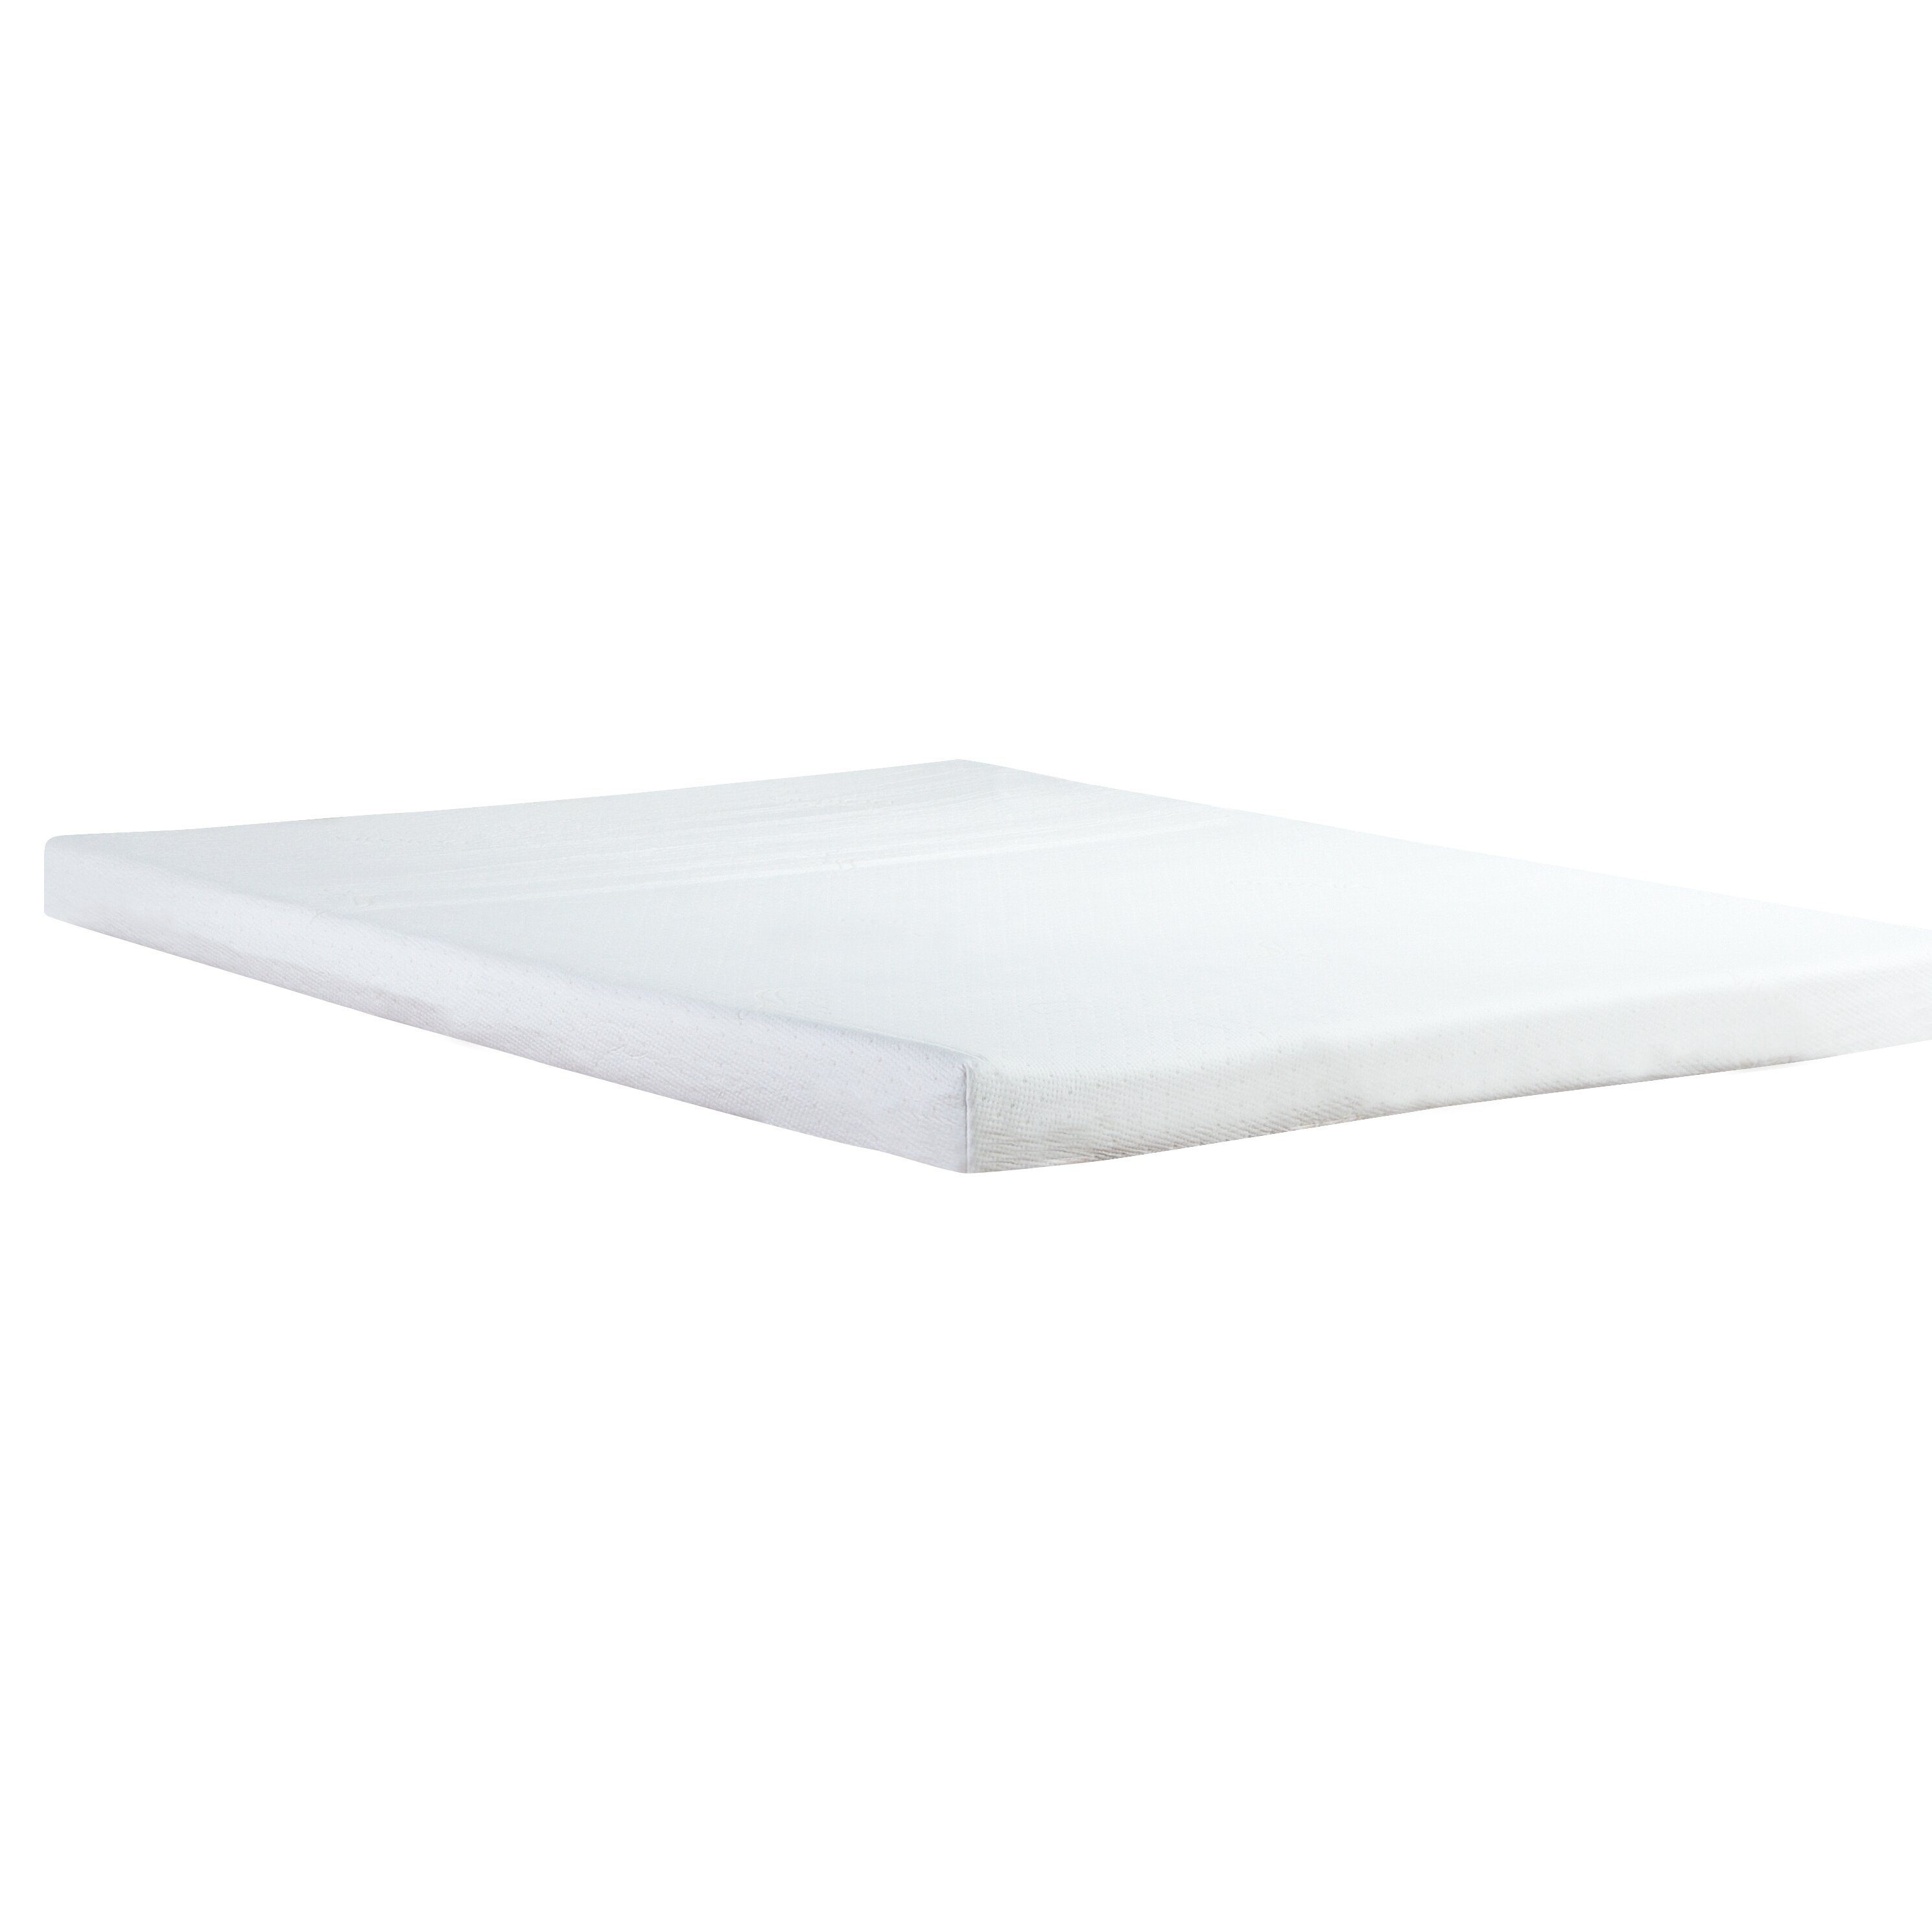 Classic Brands 4 5 Memory Foam Mattress Reviews Wayfair